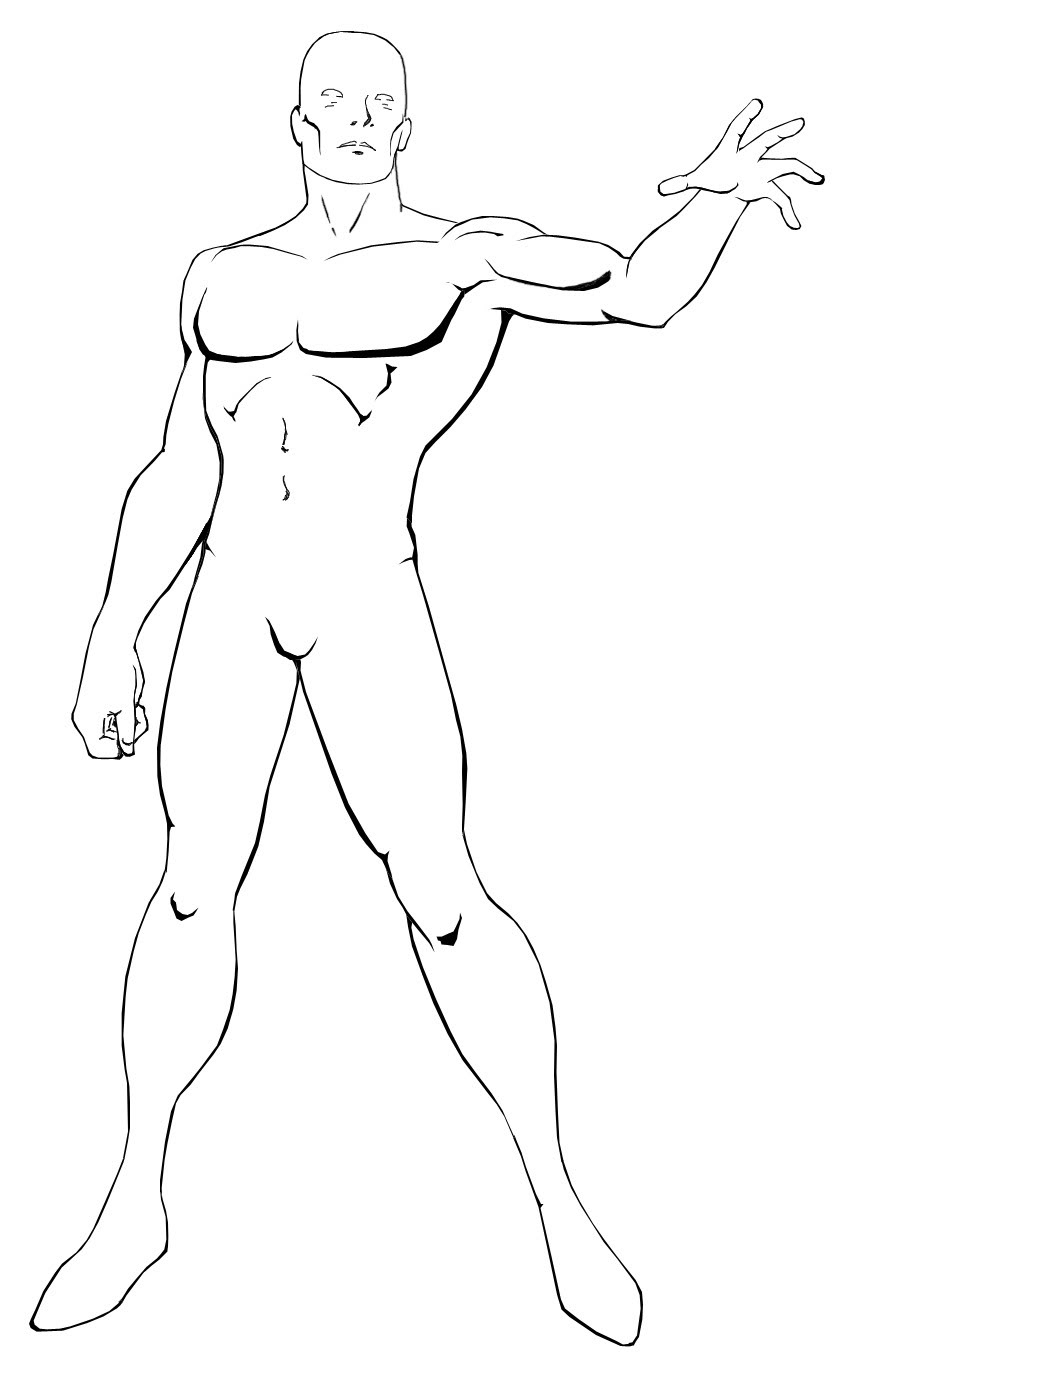 1050x1380 Outline Drawing Of Human Body Character Or Human Form Outlines